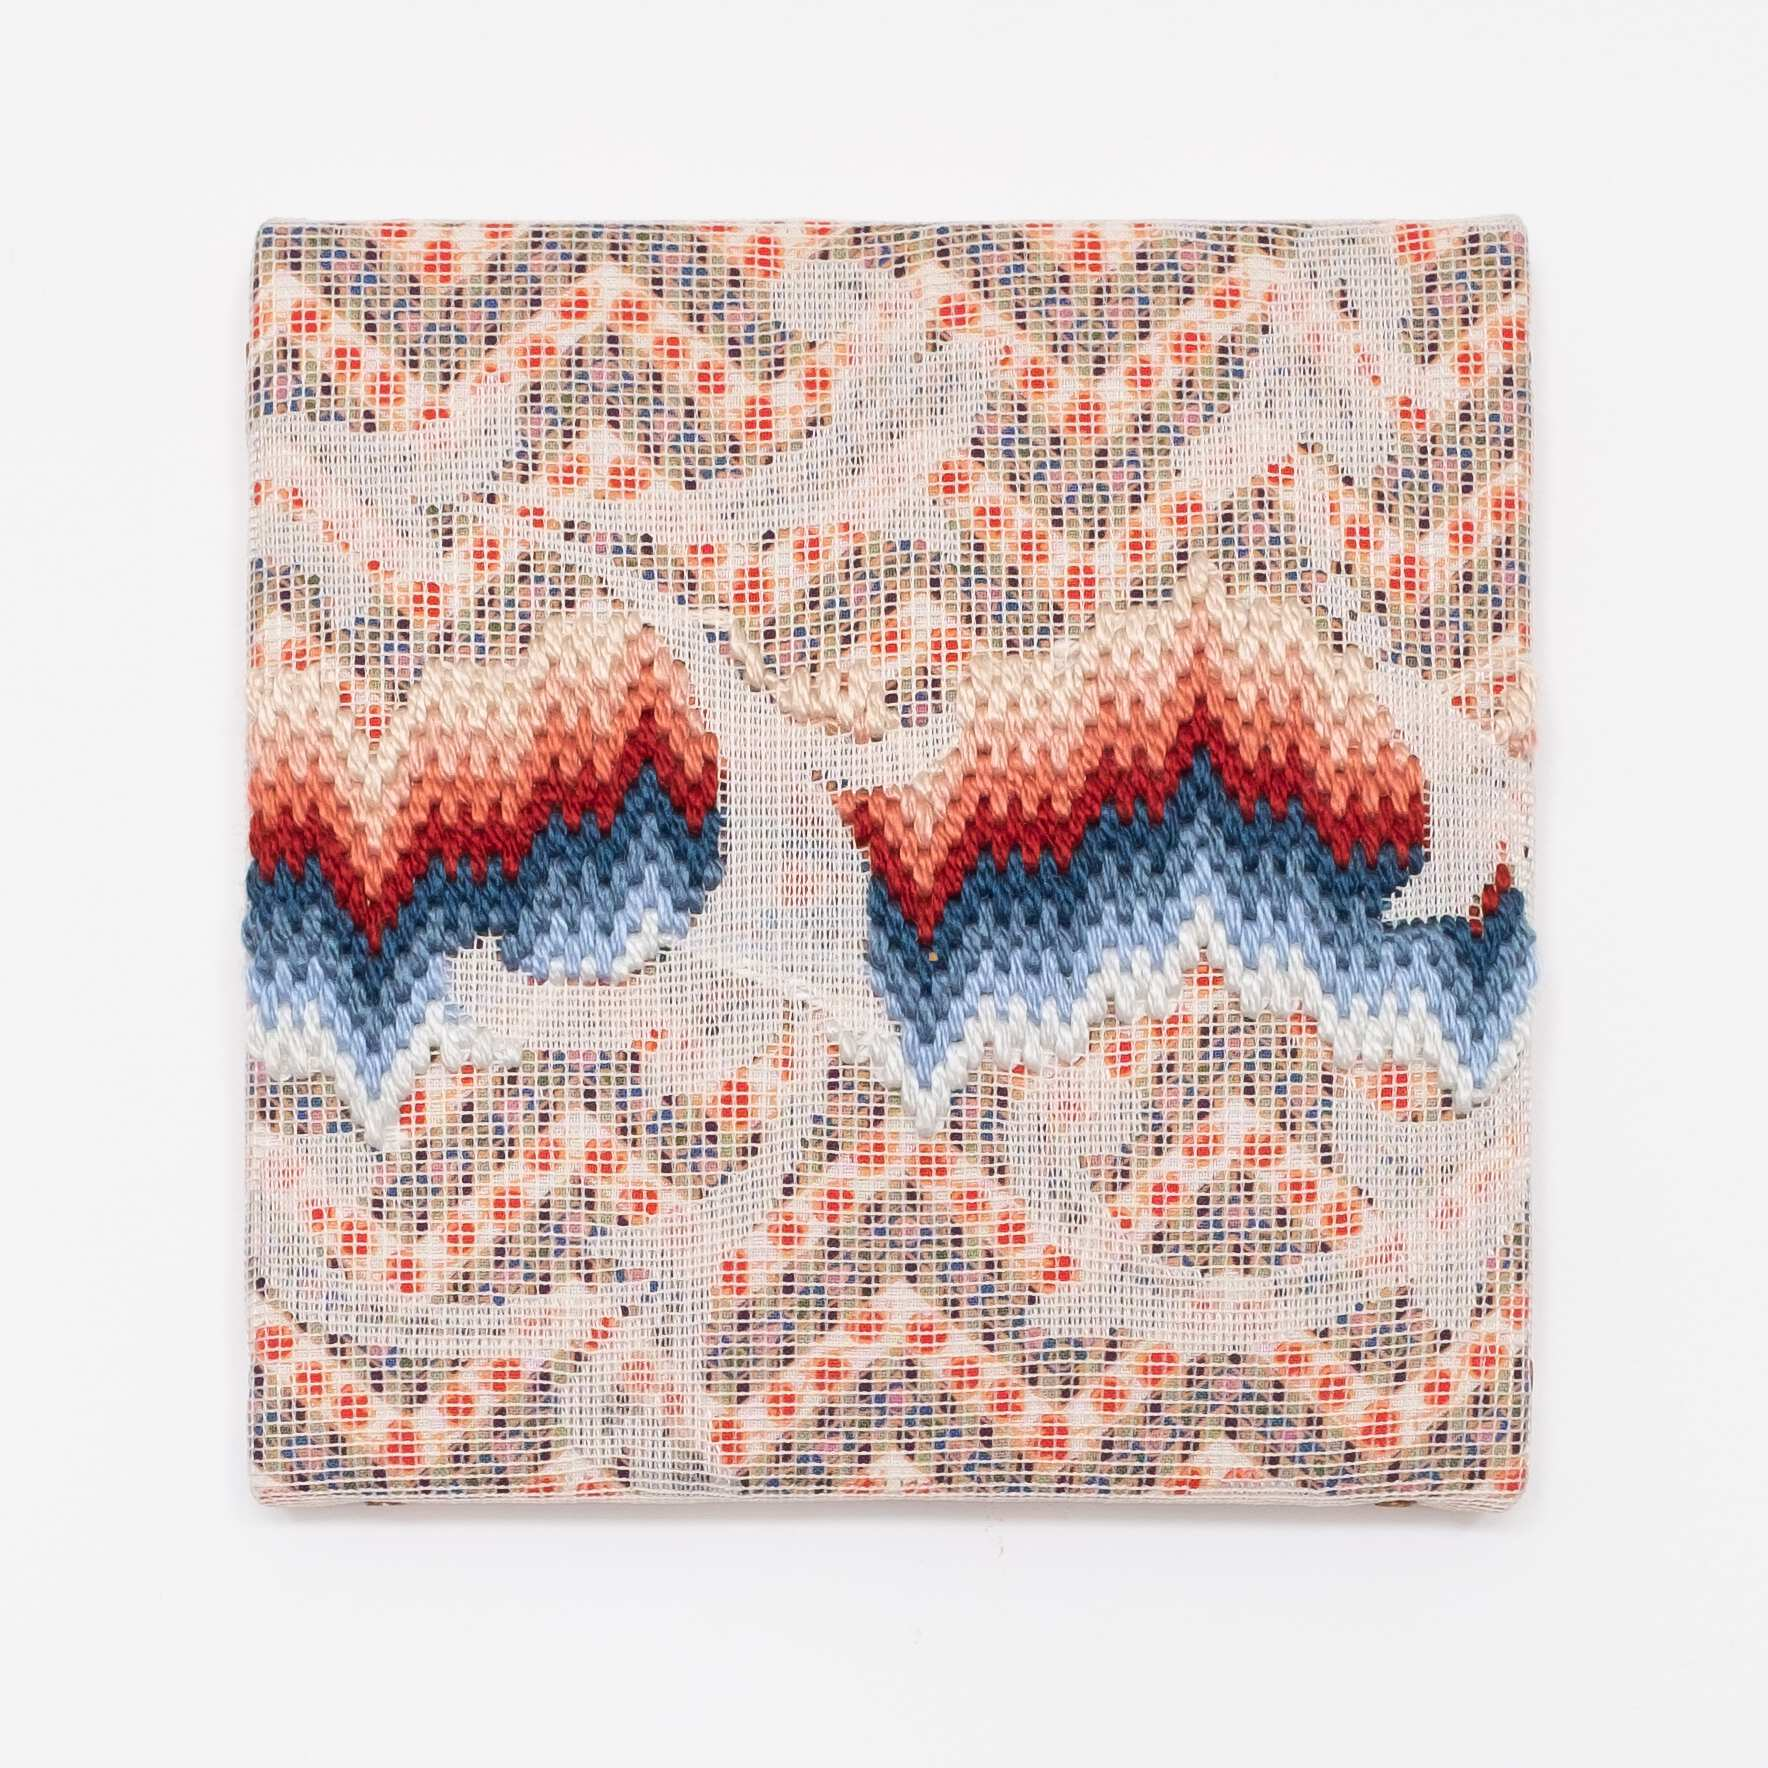 Triple-layer gather-gusset [red-blue northern lights], Hand-embroidered silk on lace over fabric, 2019